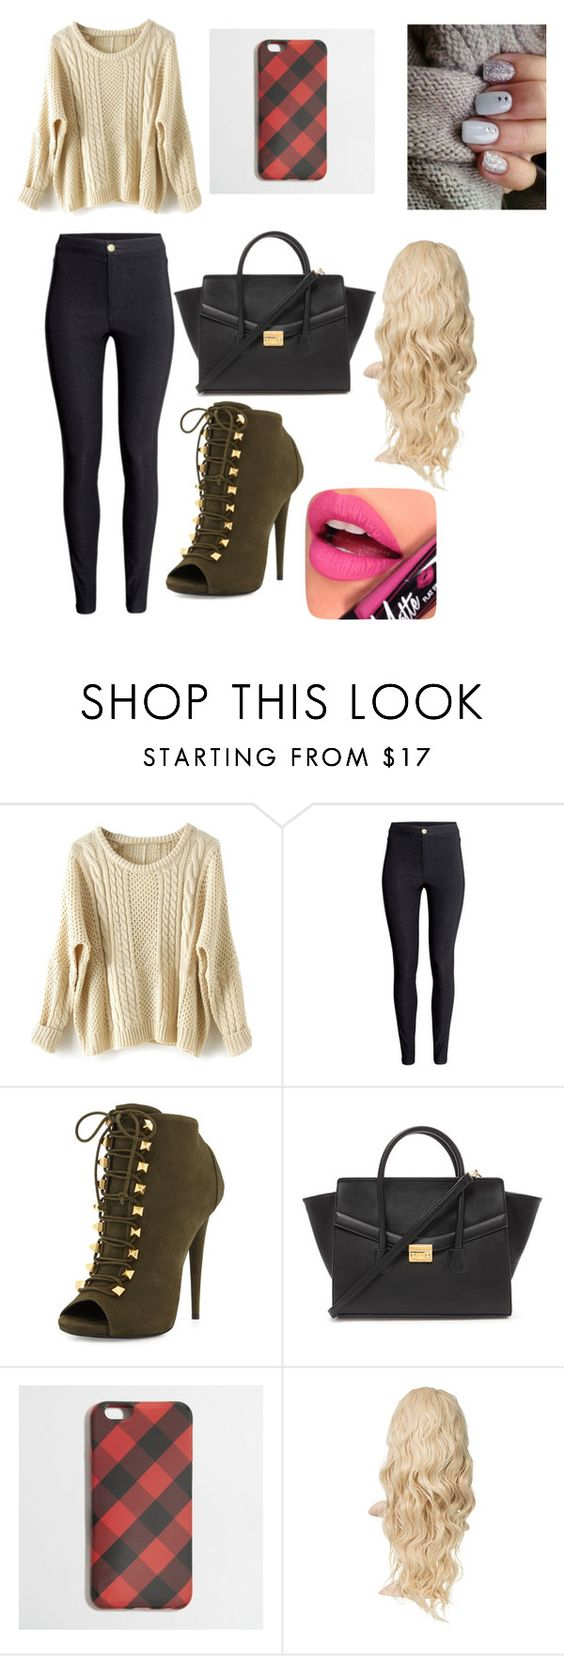 """""""Untitled #42"""" by beautyqueen202 ❤ liked on Polyvore featuring H&M, Giuseppe Zanotti, Forever 21, J.Crew and Fiebiger"""